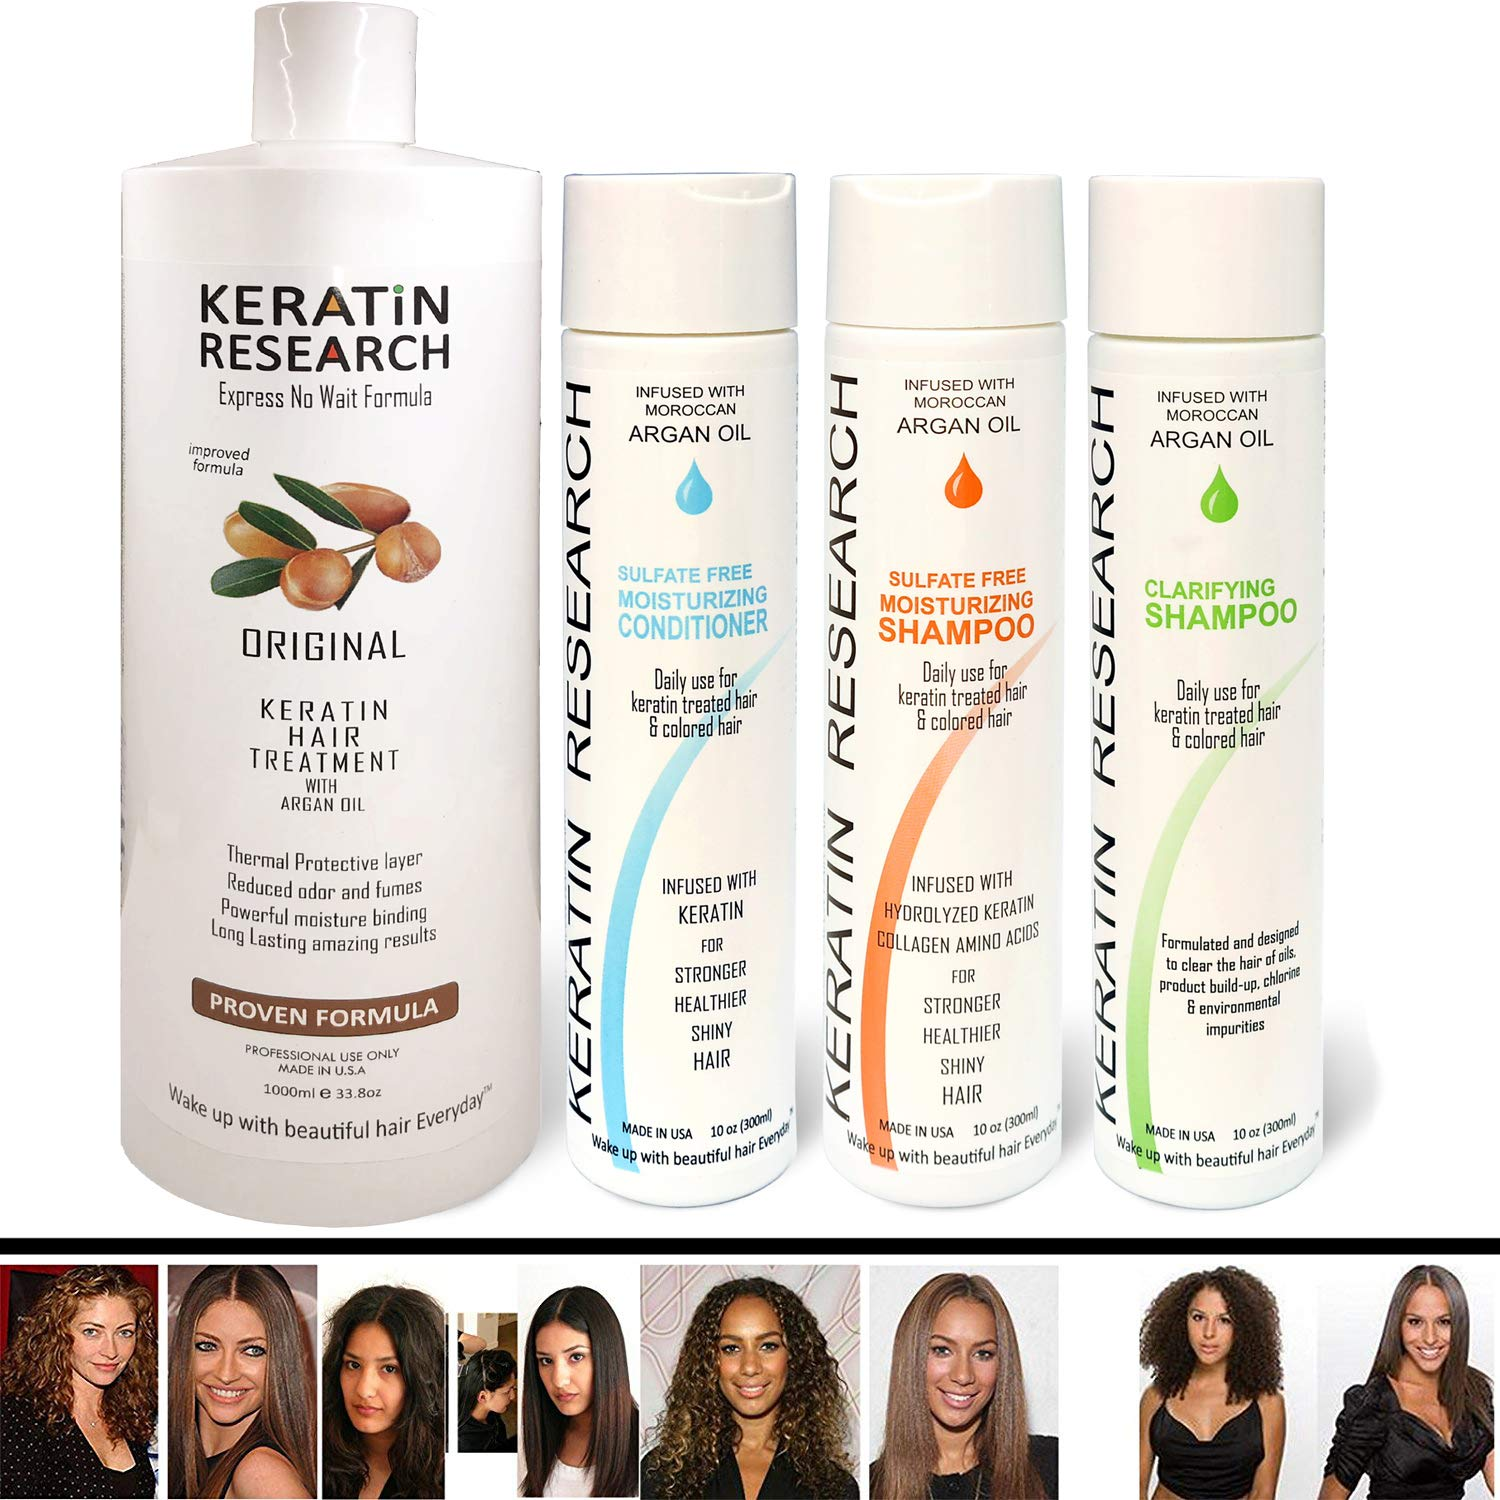 Brazilian Keratin Blowout Straightening Smoothing Hair Treatment 4 Bottles 1000ml Kit Includes Sulfate Free Shampoo Conditioner set by Keratin Research Queratina Keratina Brasilera Tratamiento by KERATIN RESEARCH